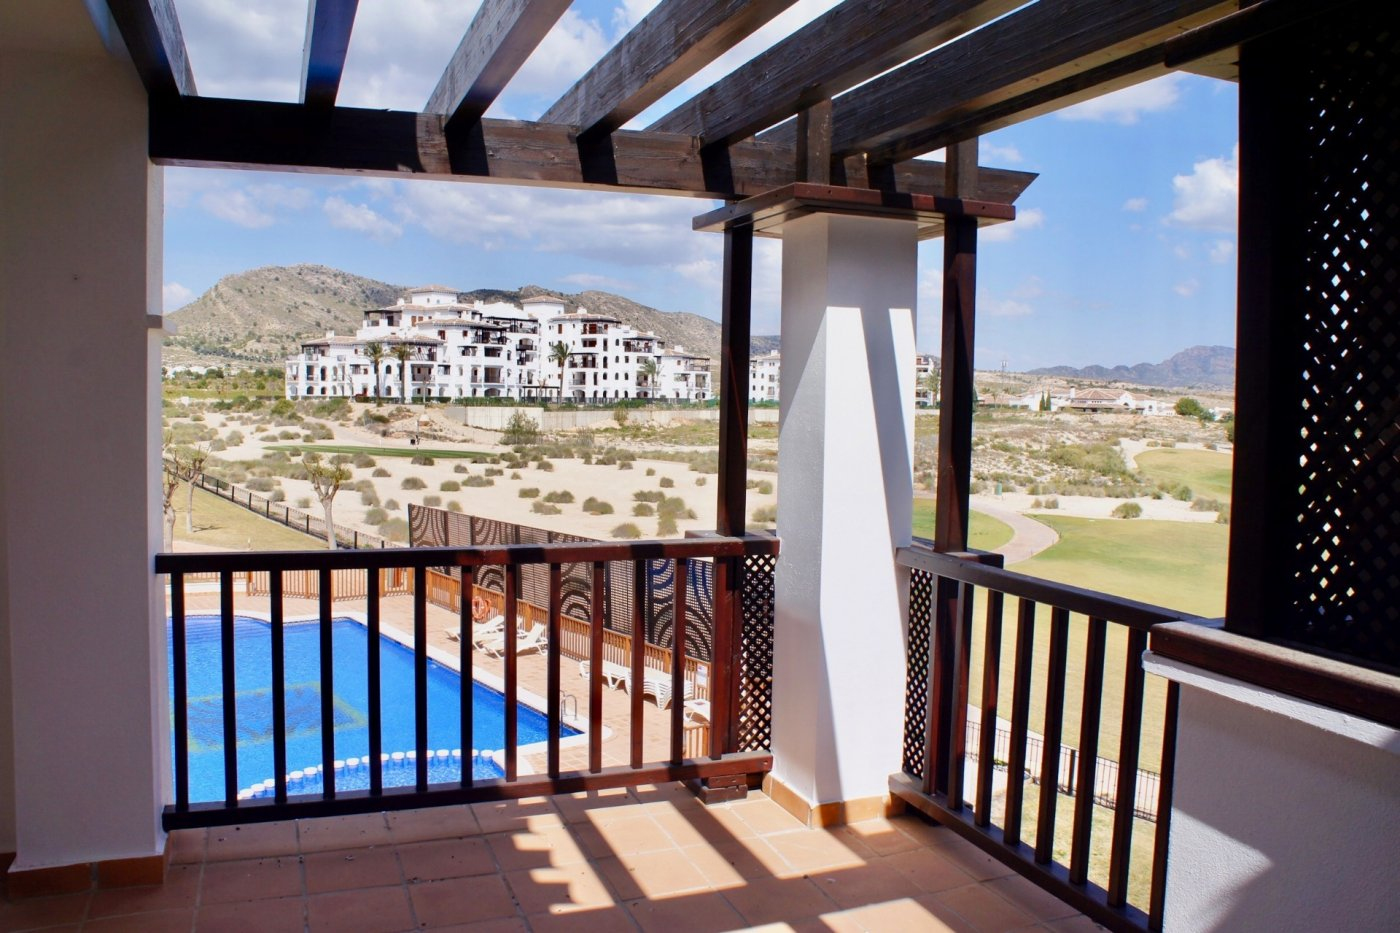 Apartment ref 3265-02805 for sale in El Valle Golf Resort Spain - Quality Homes Costa Cálida